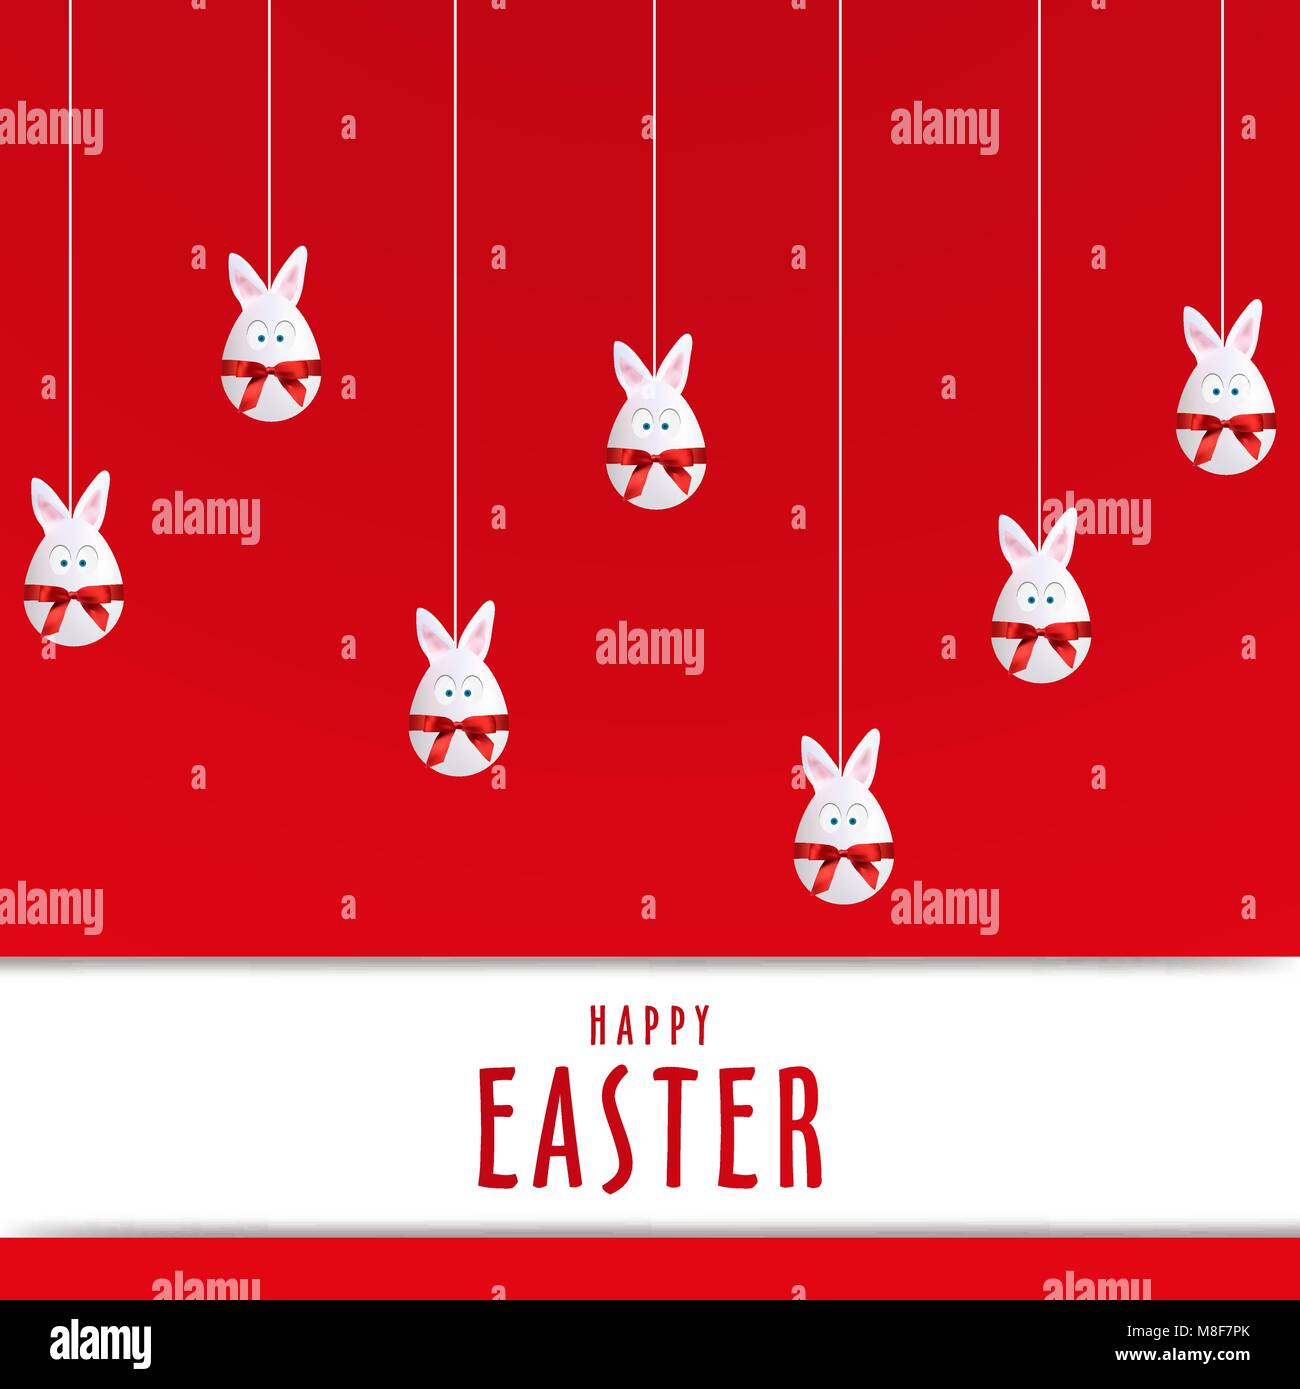 Joyeuses Pâques Lapin oeuf simple affiche, Vecteur, Illustration, fichier eps Photo Stock